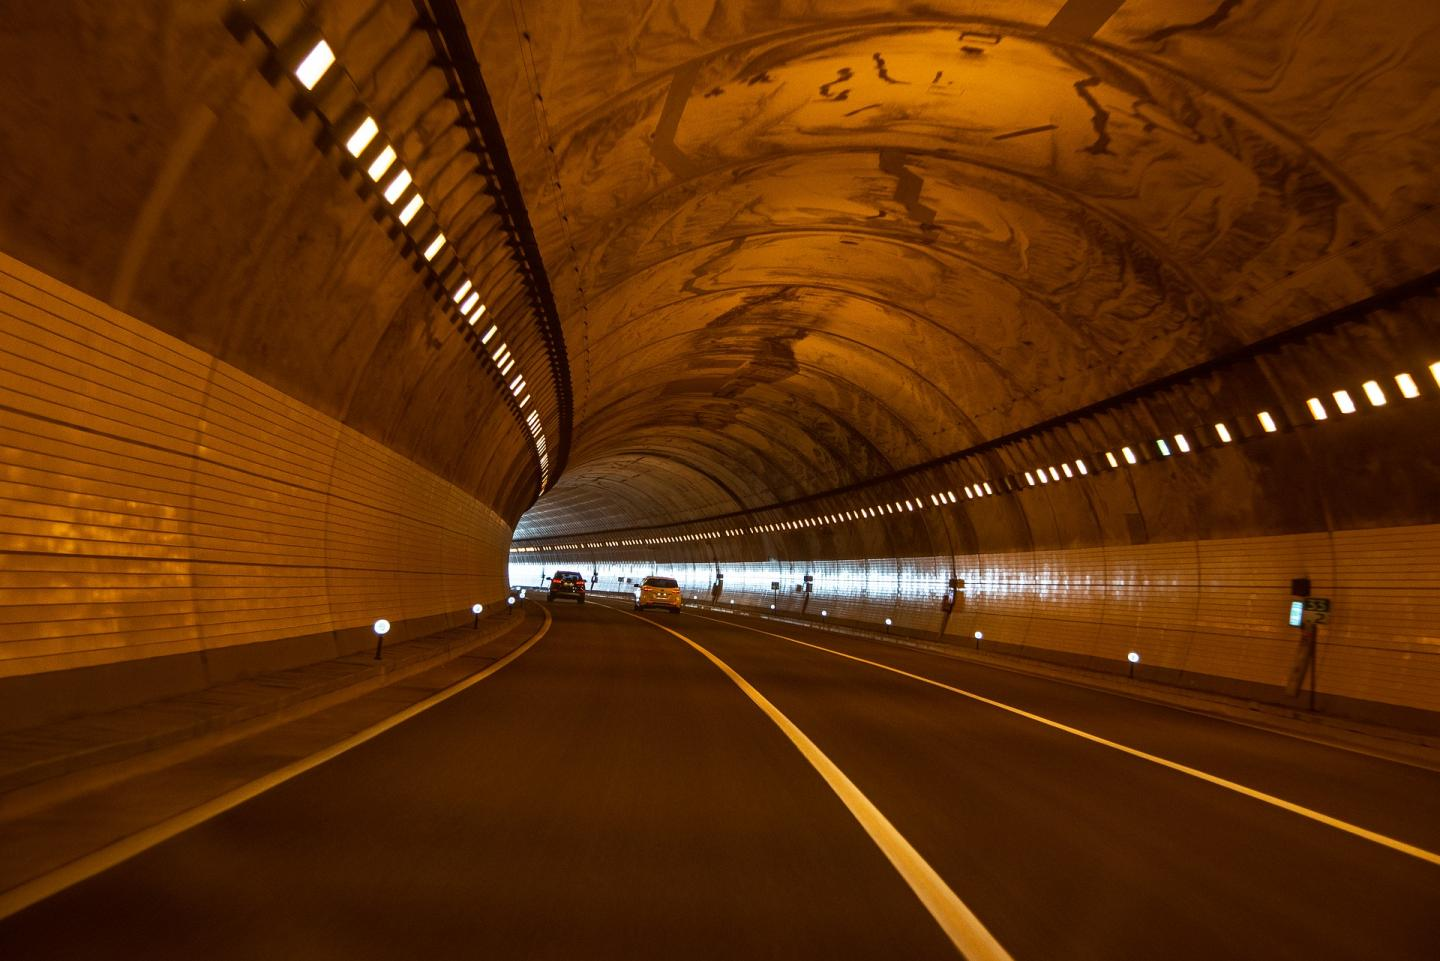 CO2 levels in Tunnels from PHOENIX CONTACT in belgium